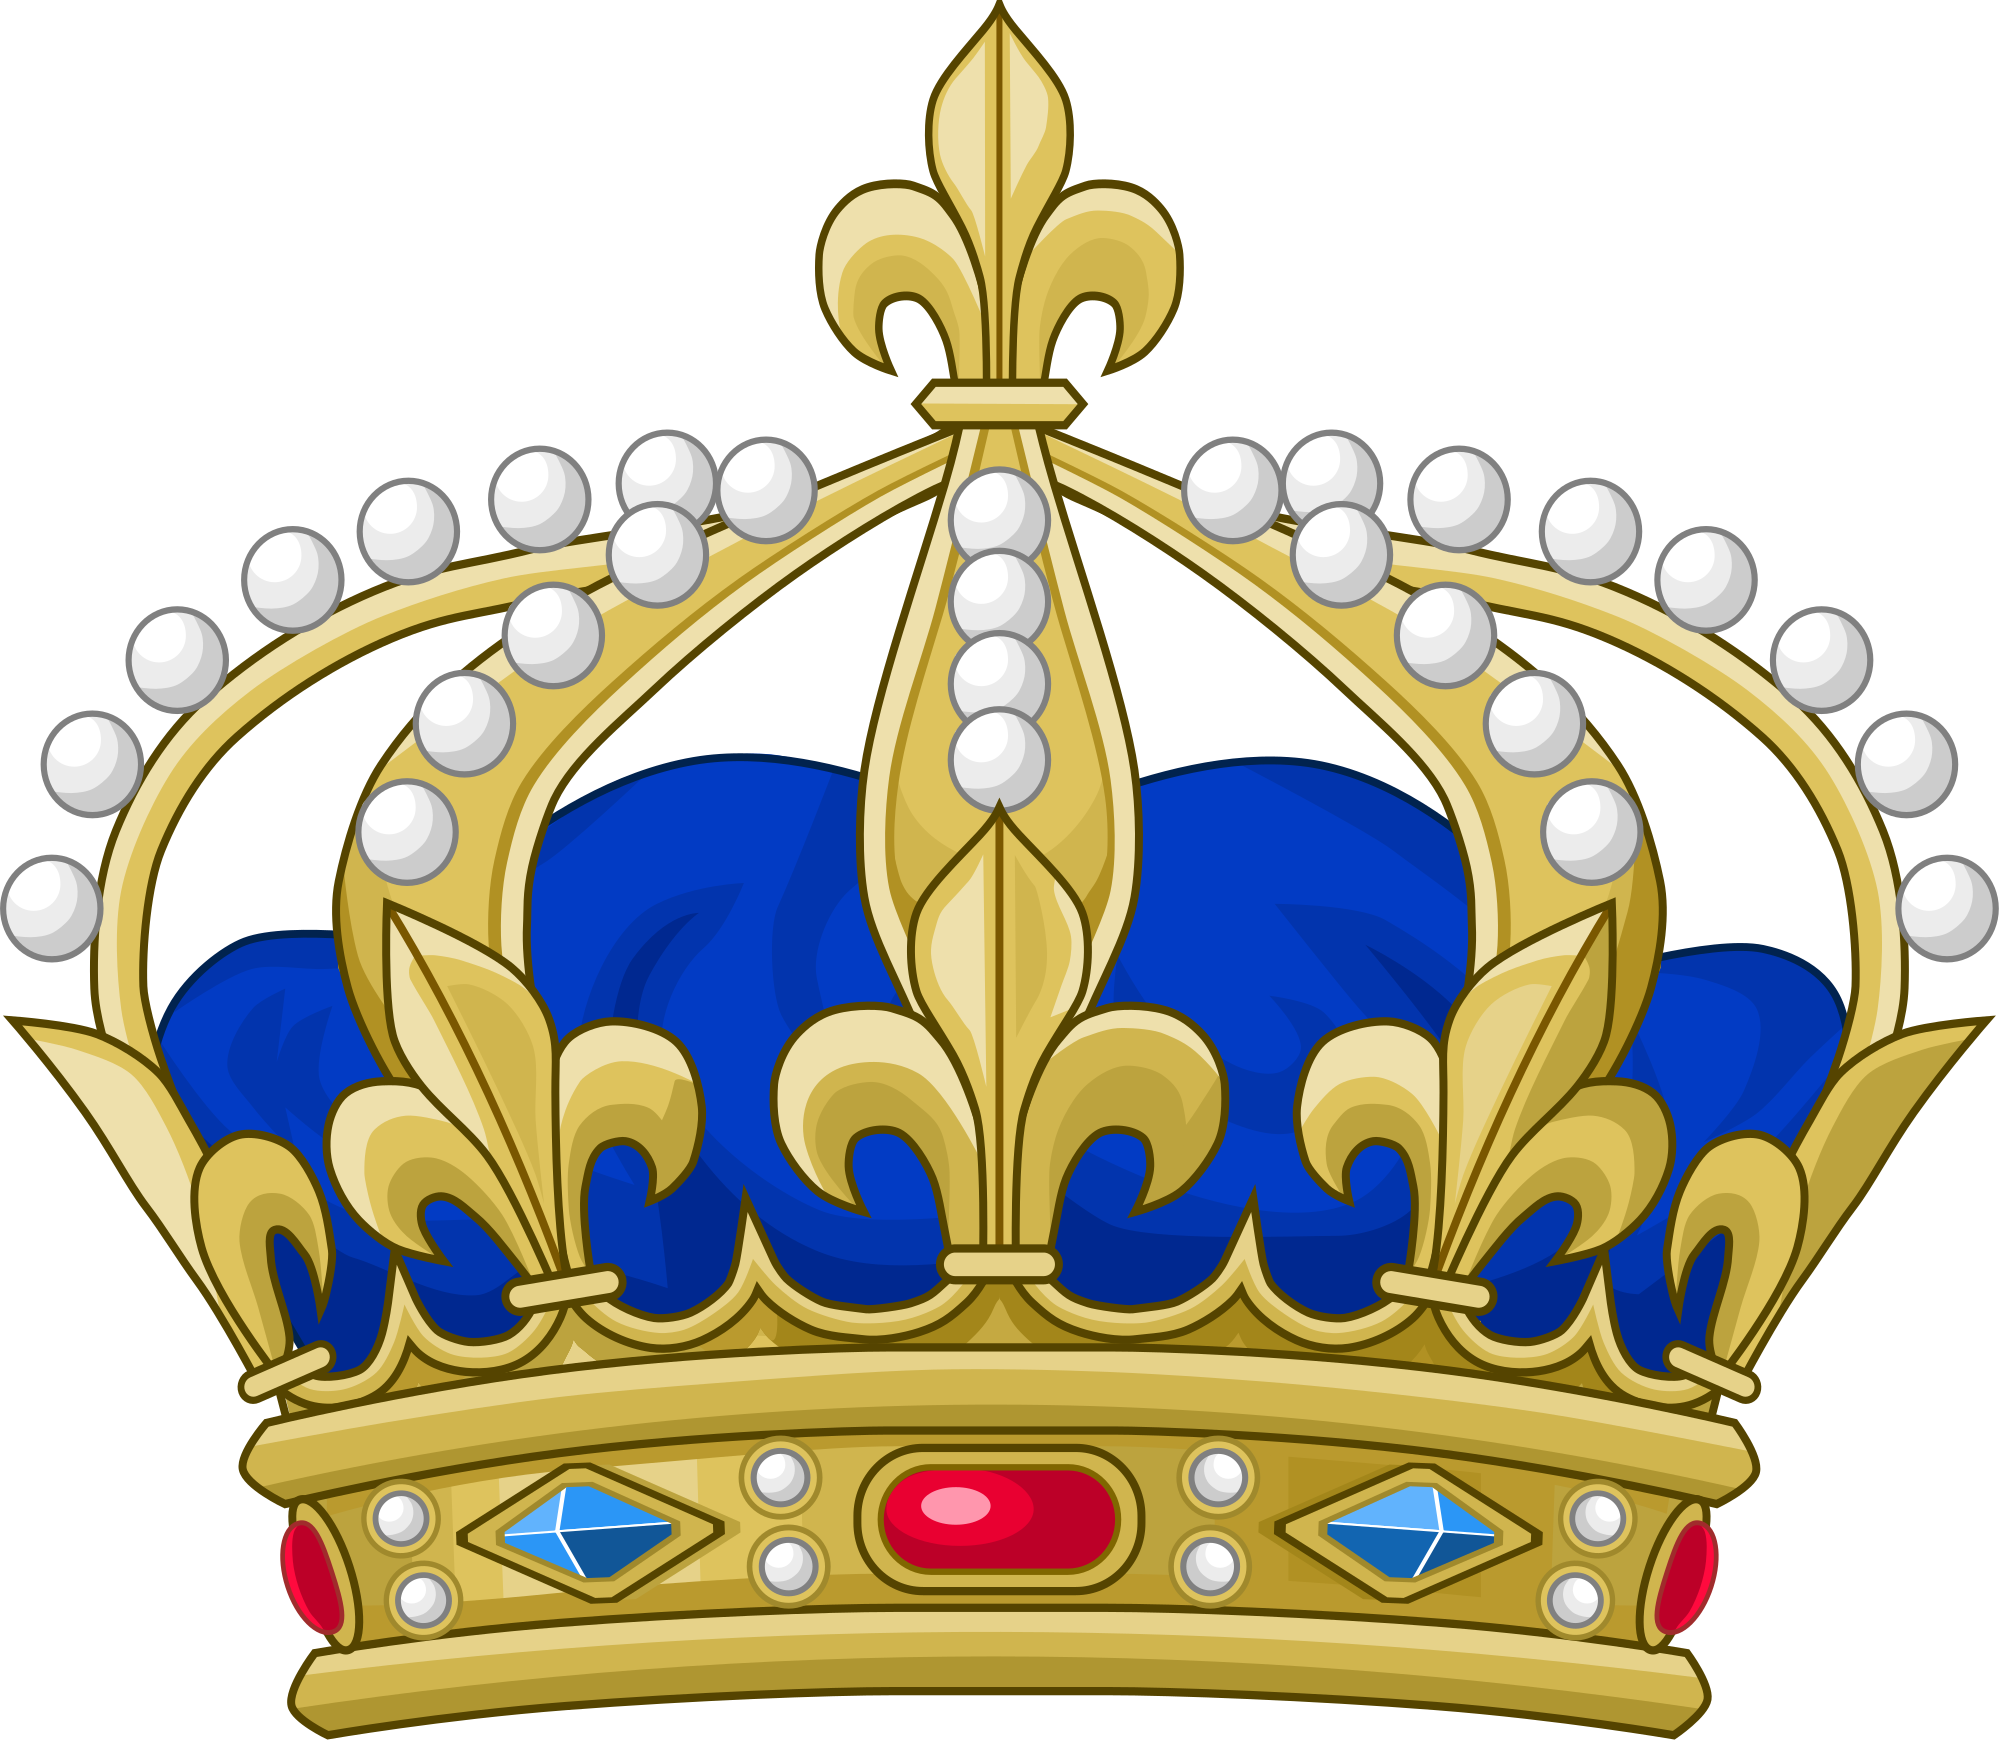 Royal crown clipart png image File:Royal Crown of France.svg - Wikimedia Commons image